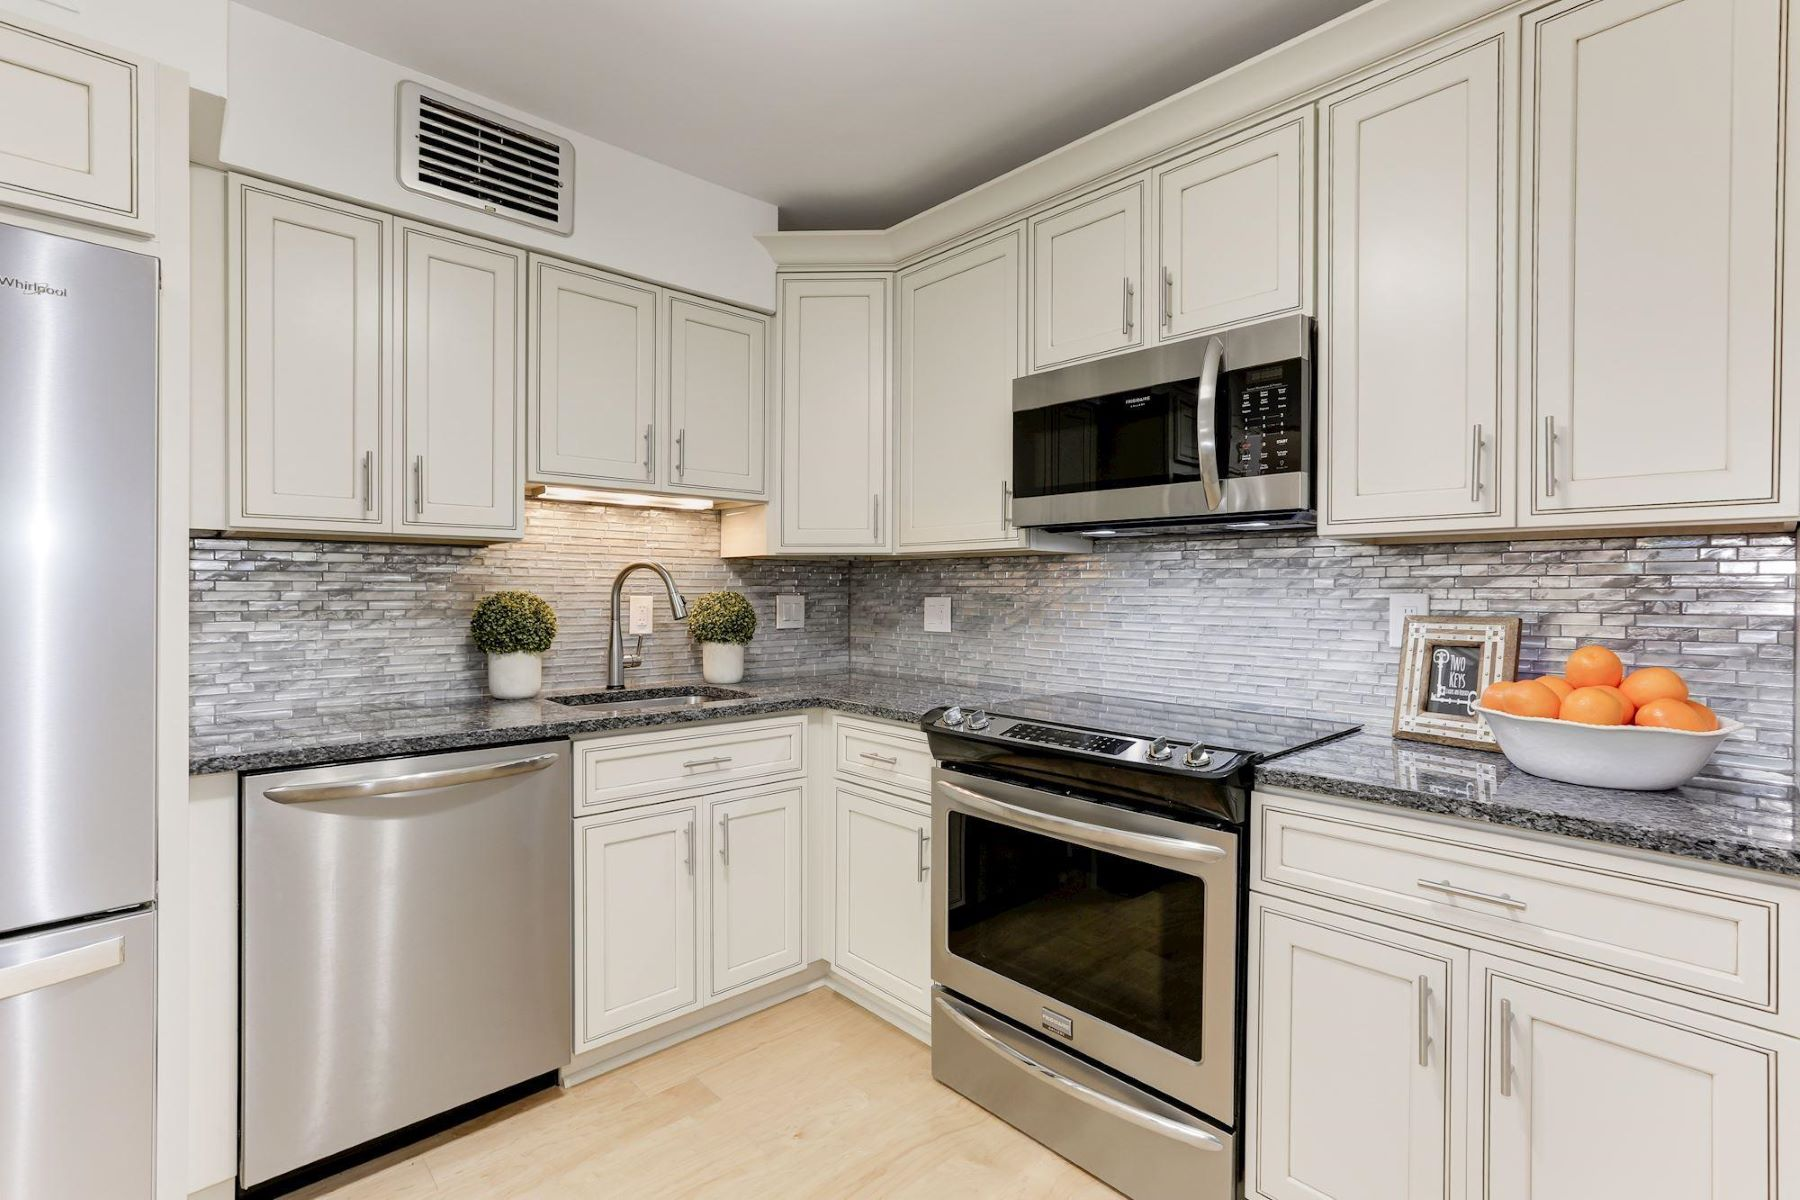 Additional photo for property listing at 1800 Old Meadow Rd #915 1800 Old Meadow Rd #915 McLean, Virginia 22102 United States